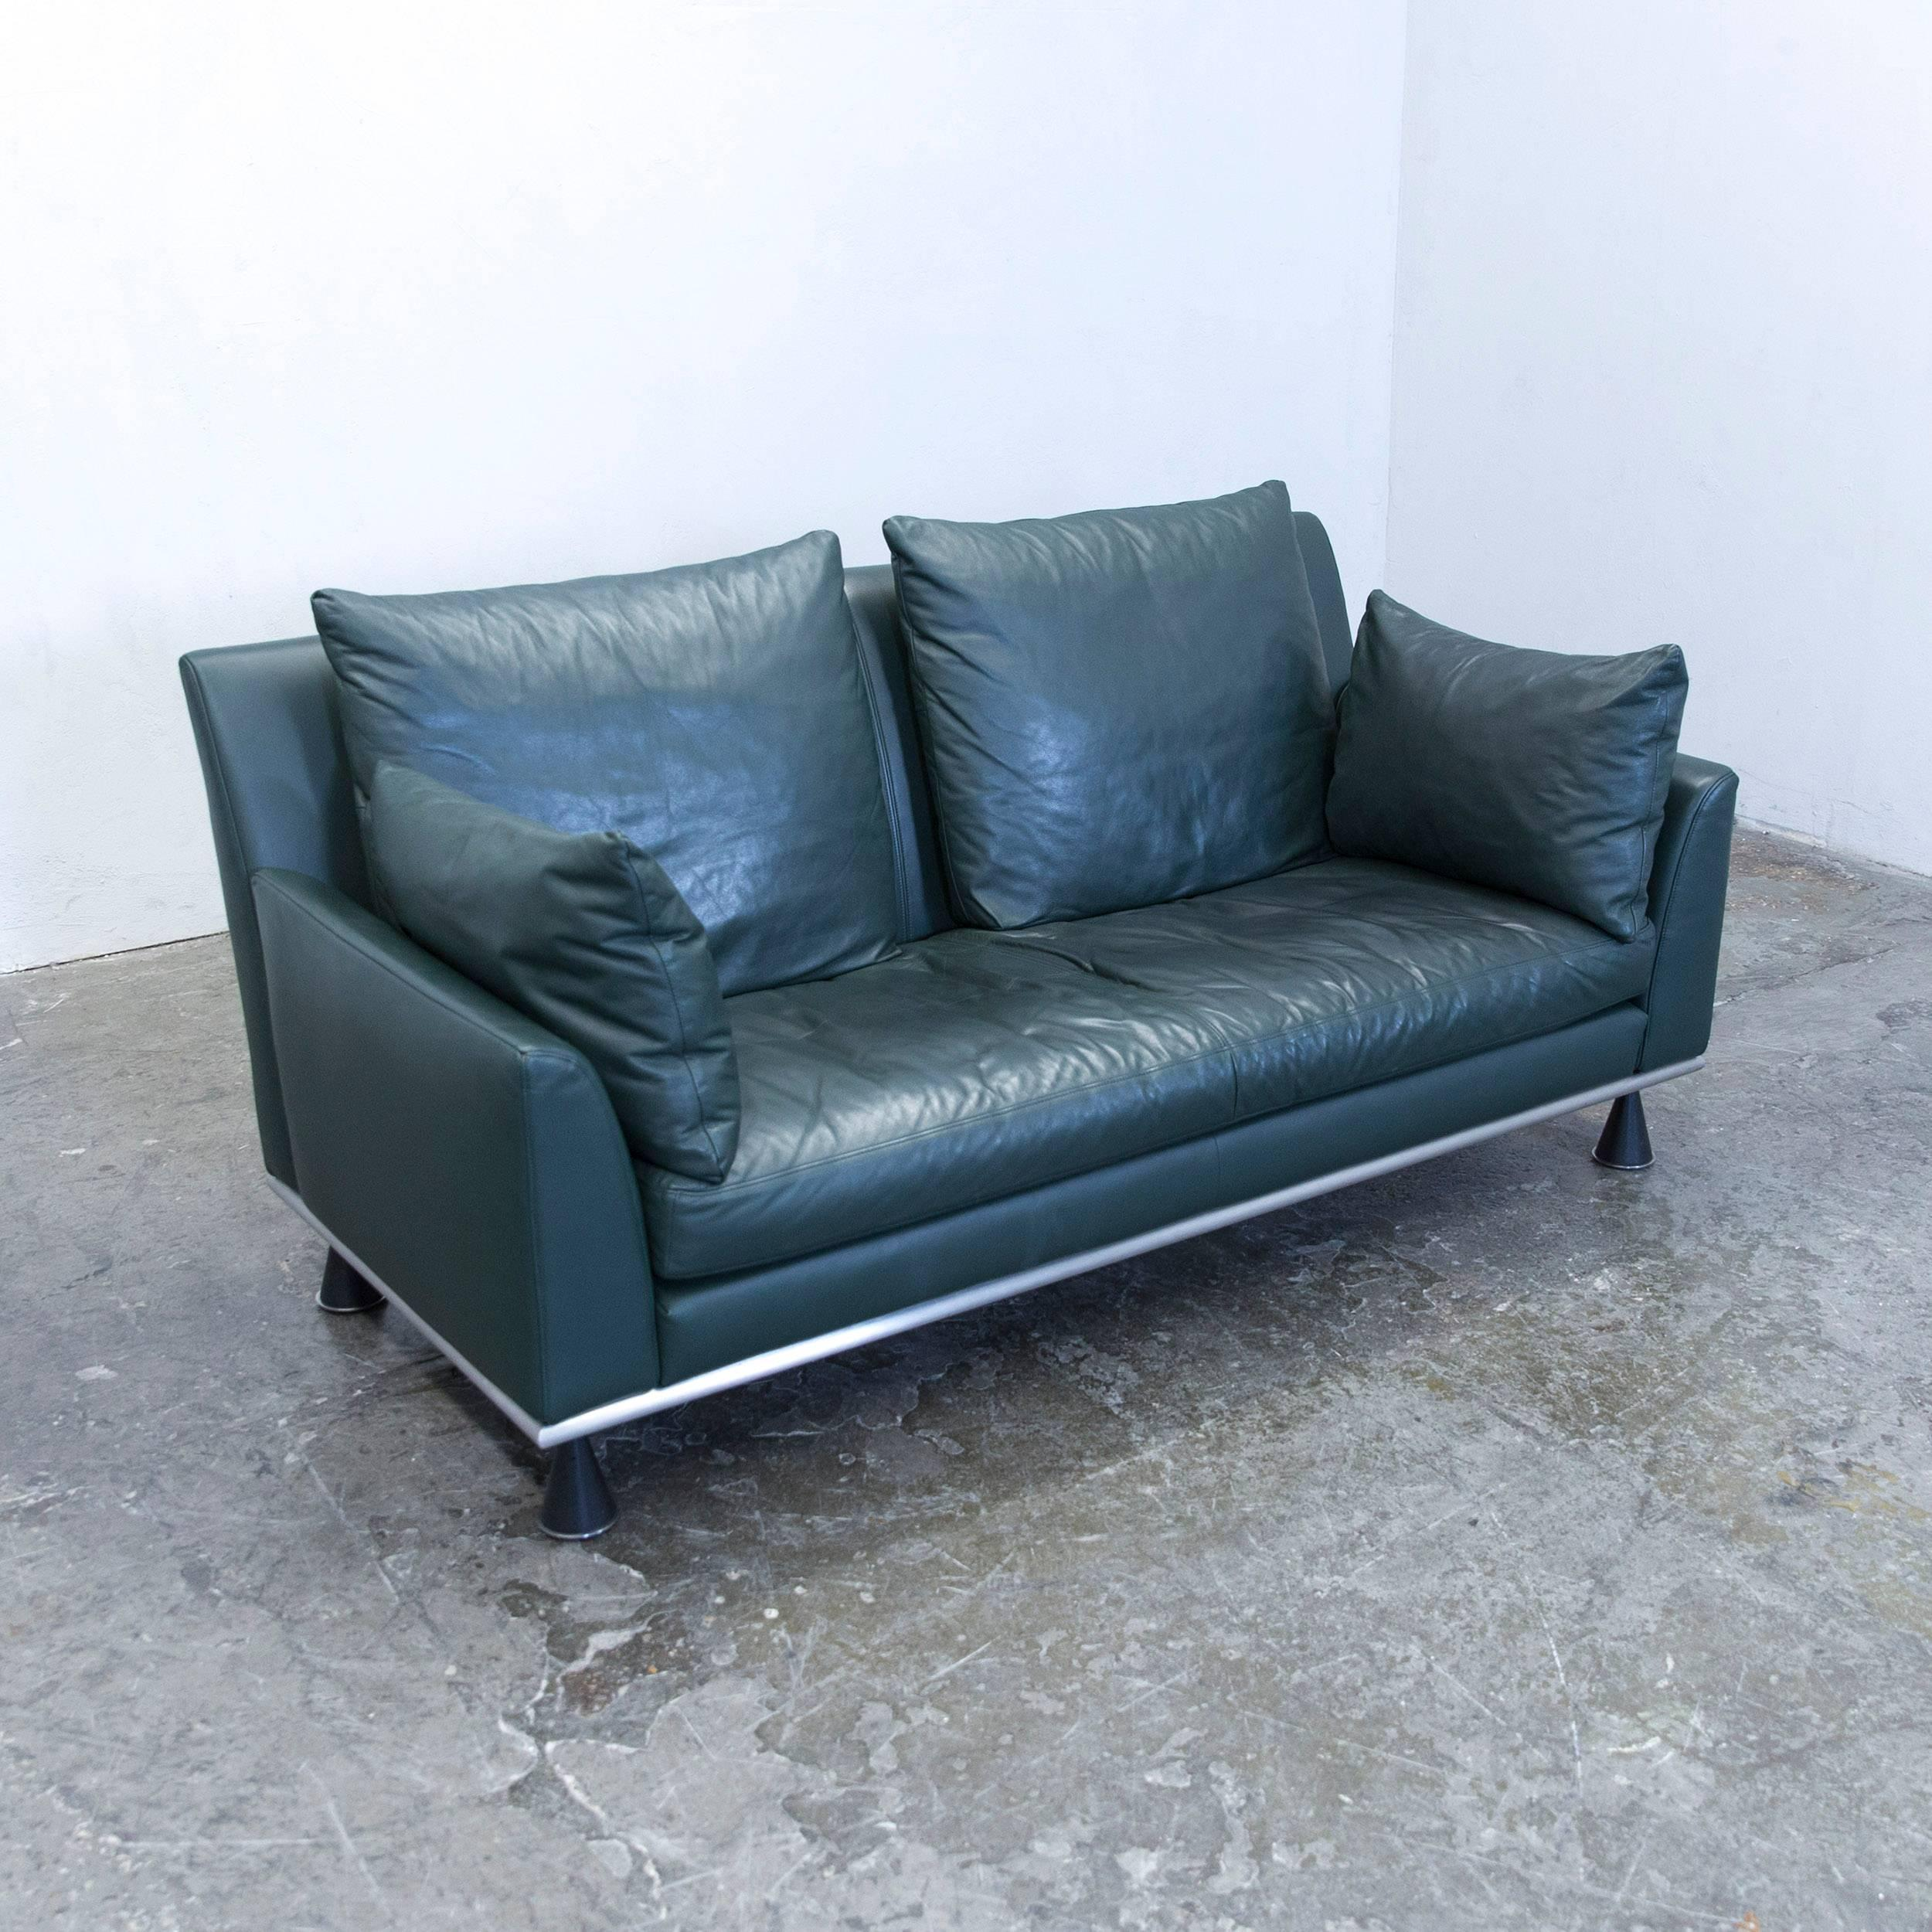 rolf benz sofa reviews heavy duty springs polstermbel perfect furniture fine dono modular